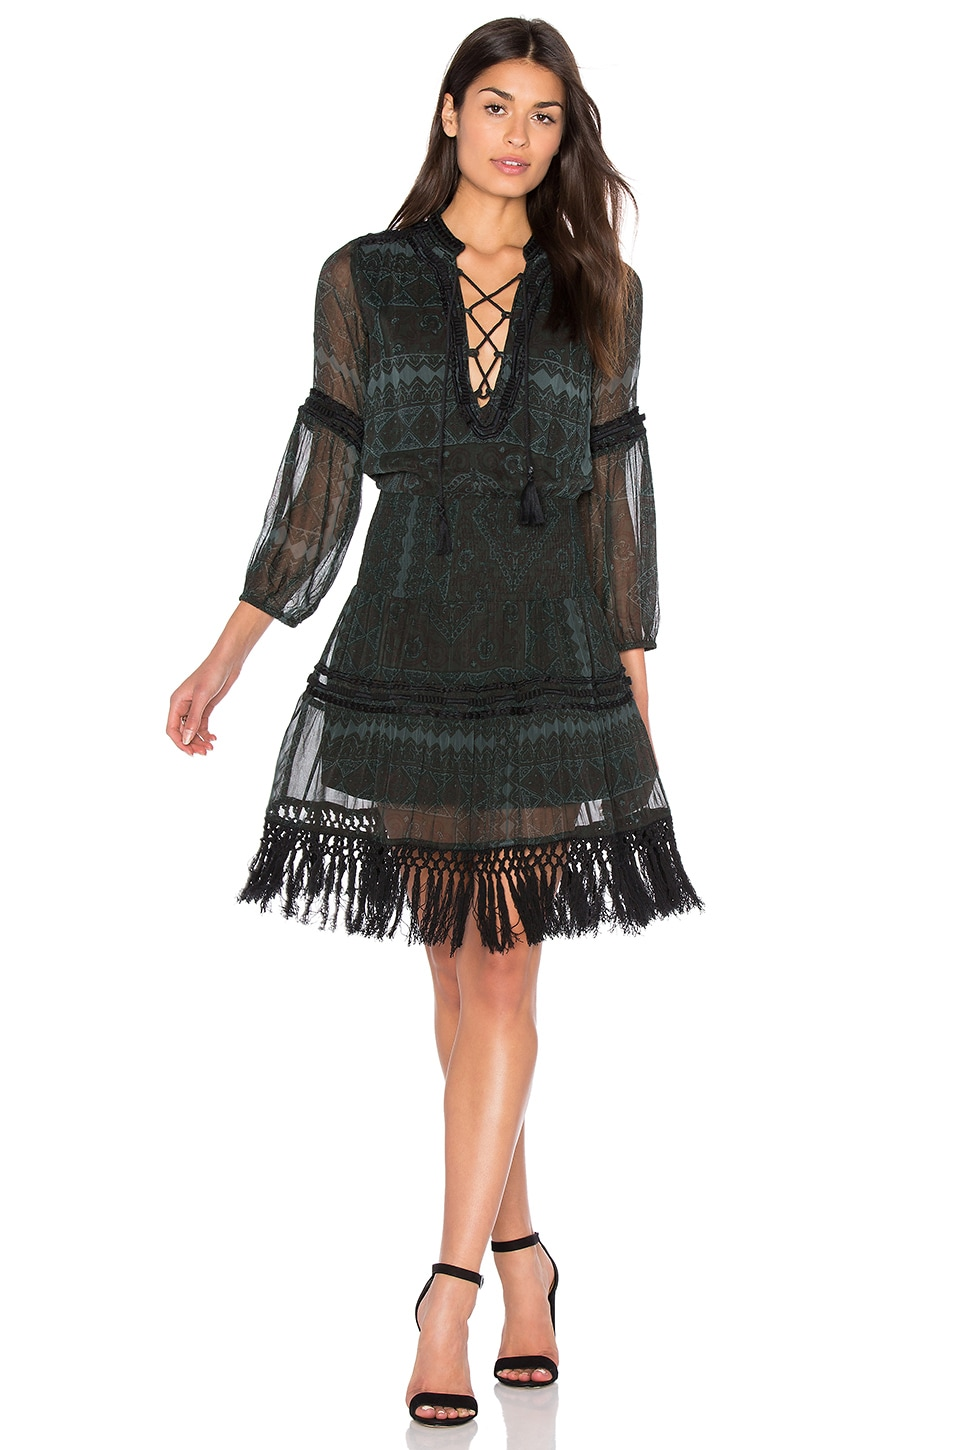 Montaigne Fringe Mini Dress